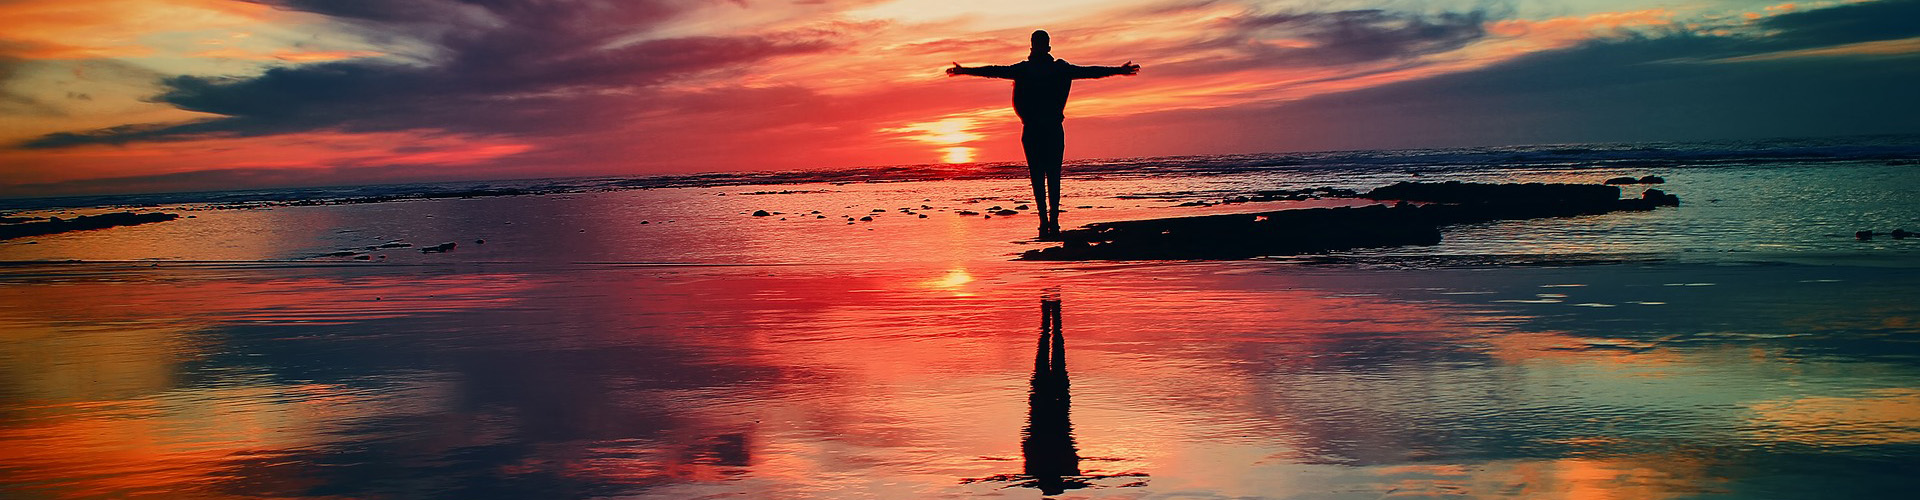 Man standing with his arms open on a beach with a red sunset in the background